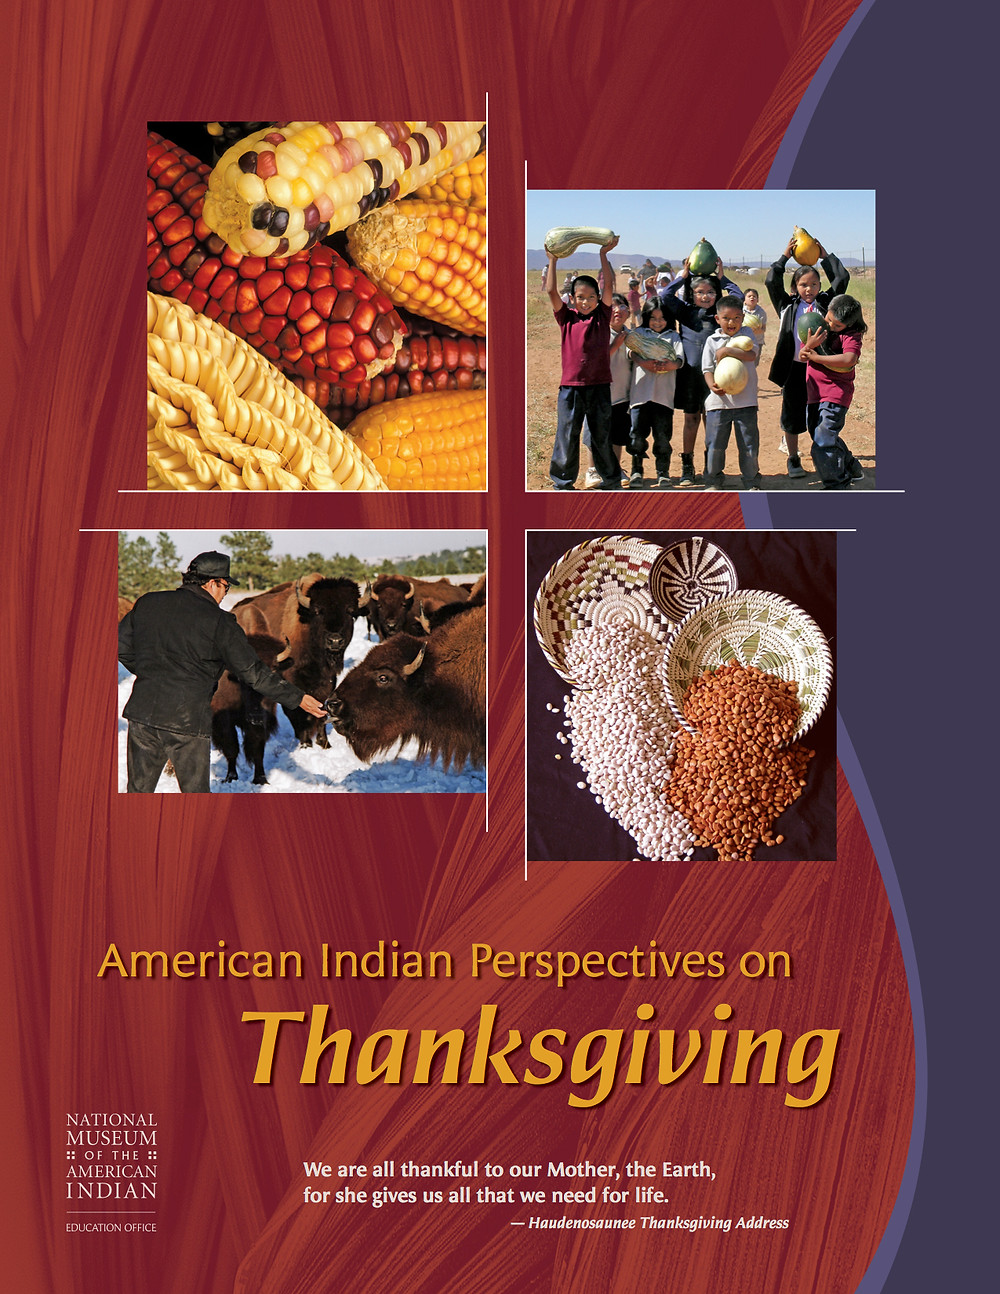 American Indian Perspectives on Thanksgiving poster page 1